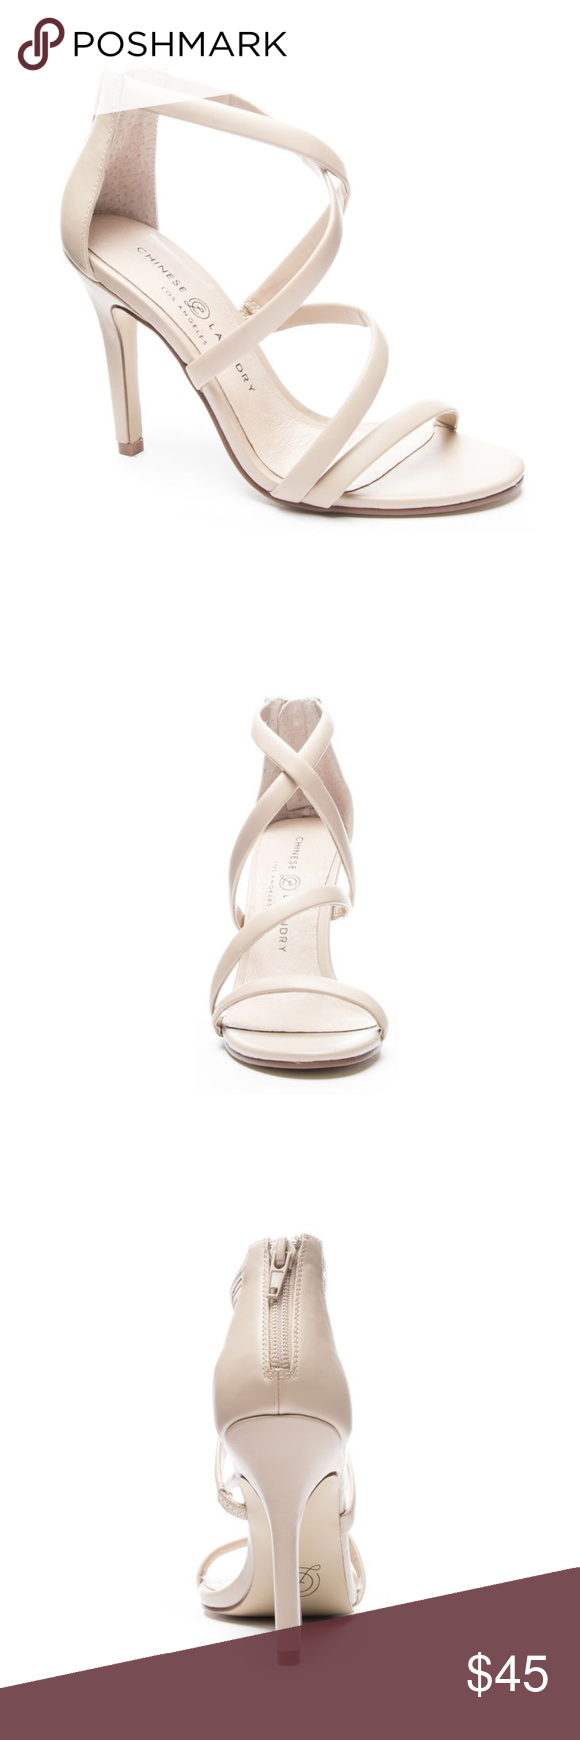 Chinese Laundry Jillian Strappy Heel Boutique With Images Heels Strappy Heels Stiletto Heels